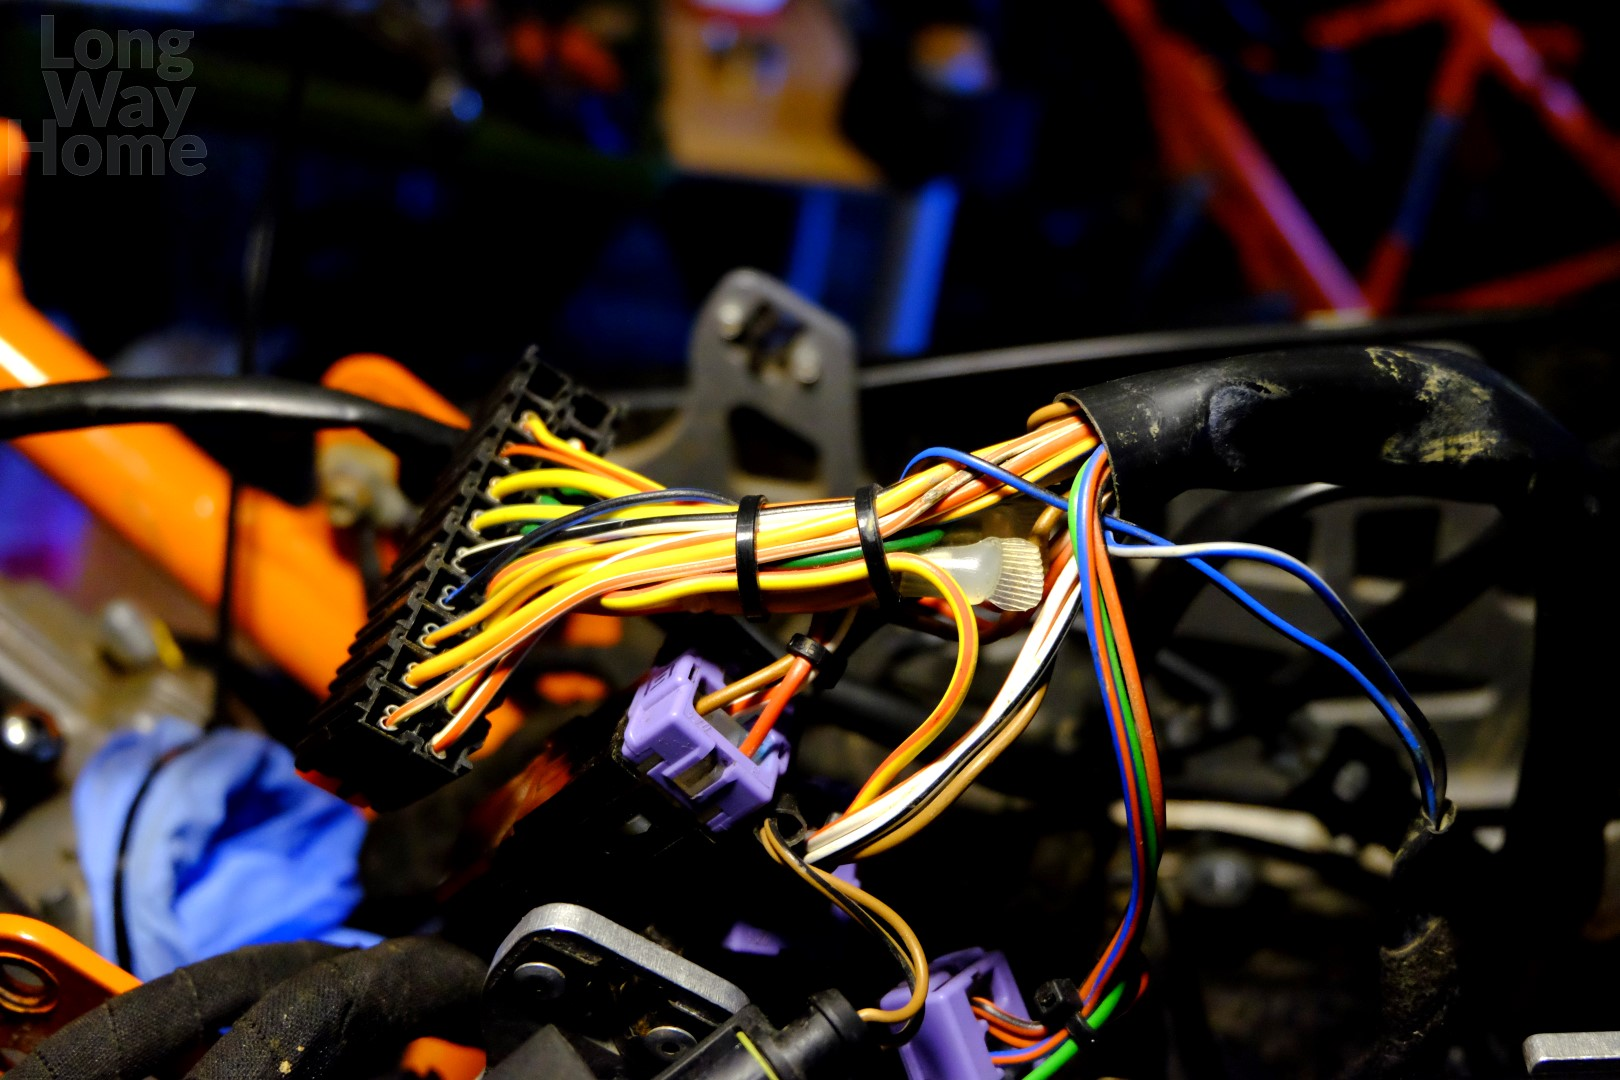 Long Way Home - Workshop - KTM 690 Enduro - Wire harness Which Wiring Is Suitable For Workshop on